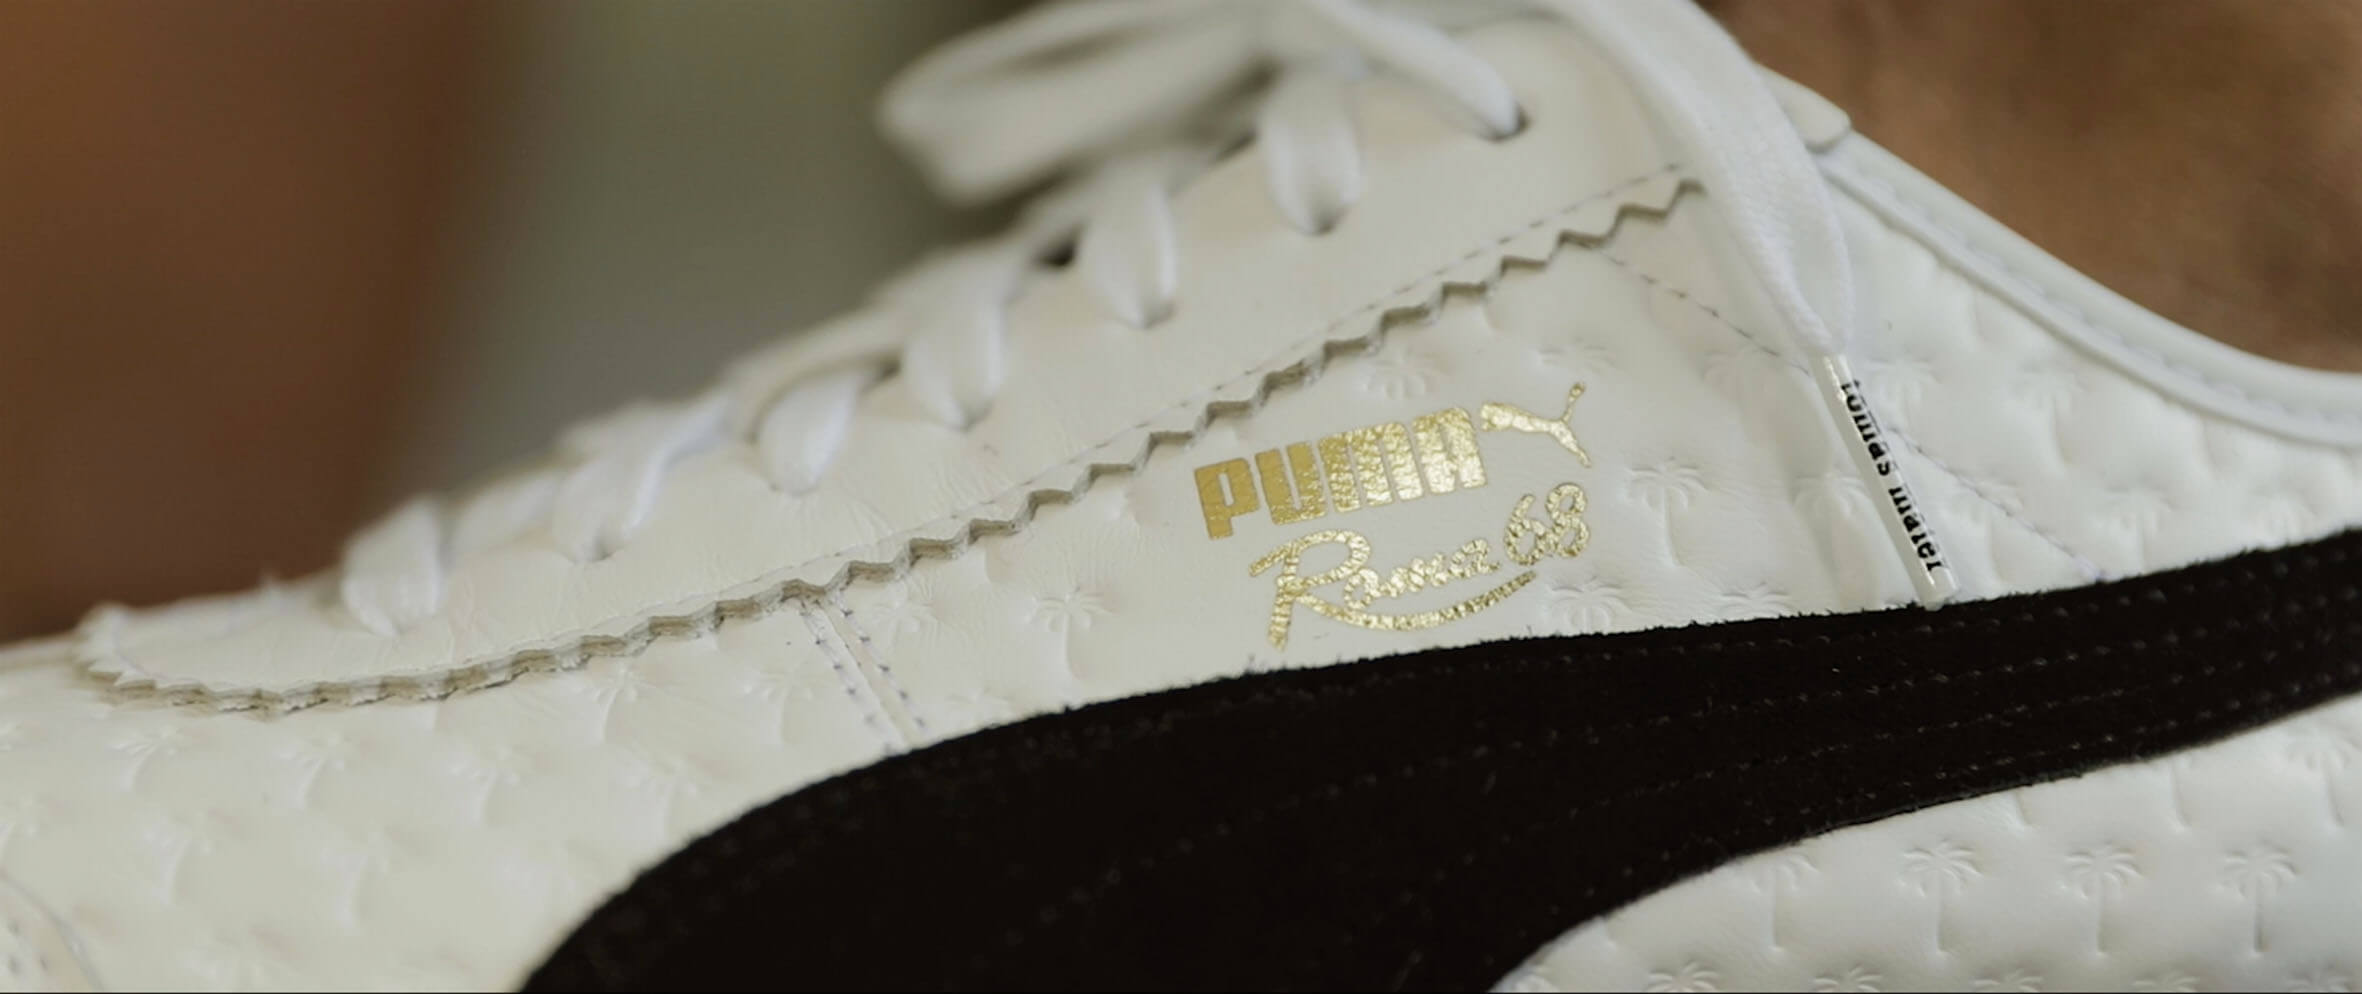 Turf Empire PUMA Maier Limited Edition 1.jpg